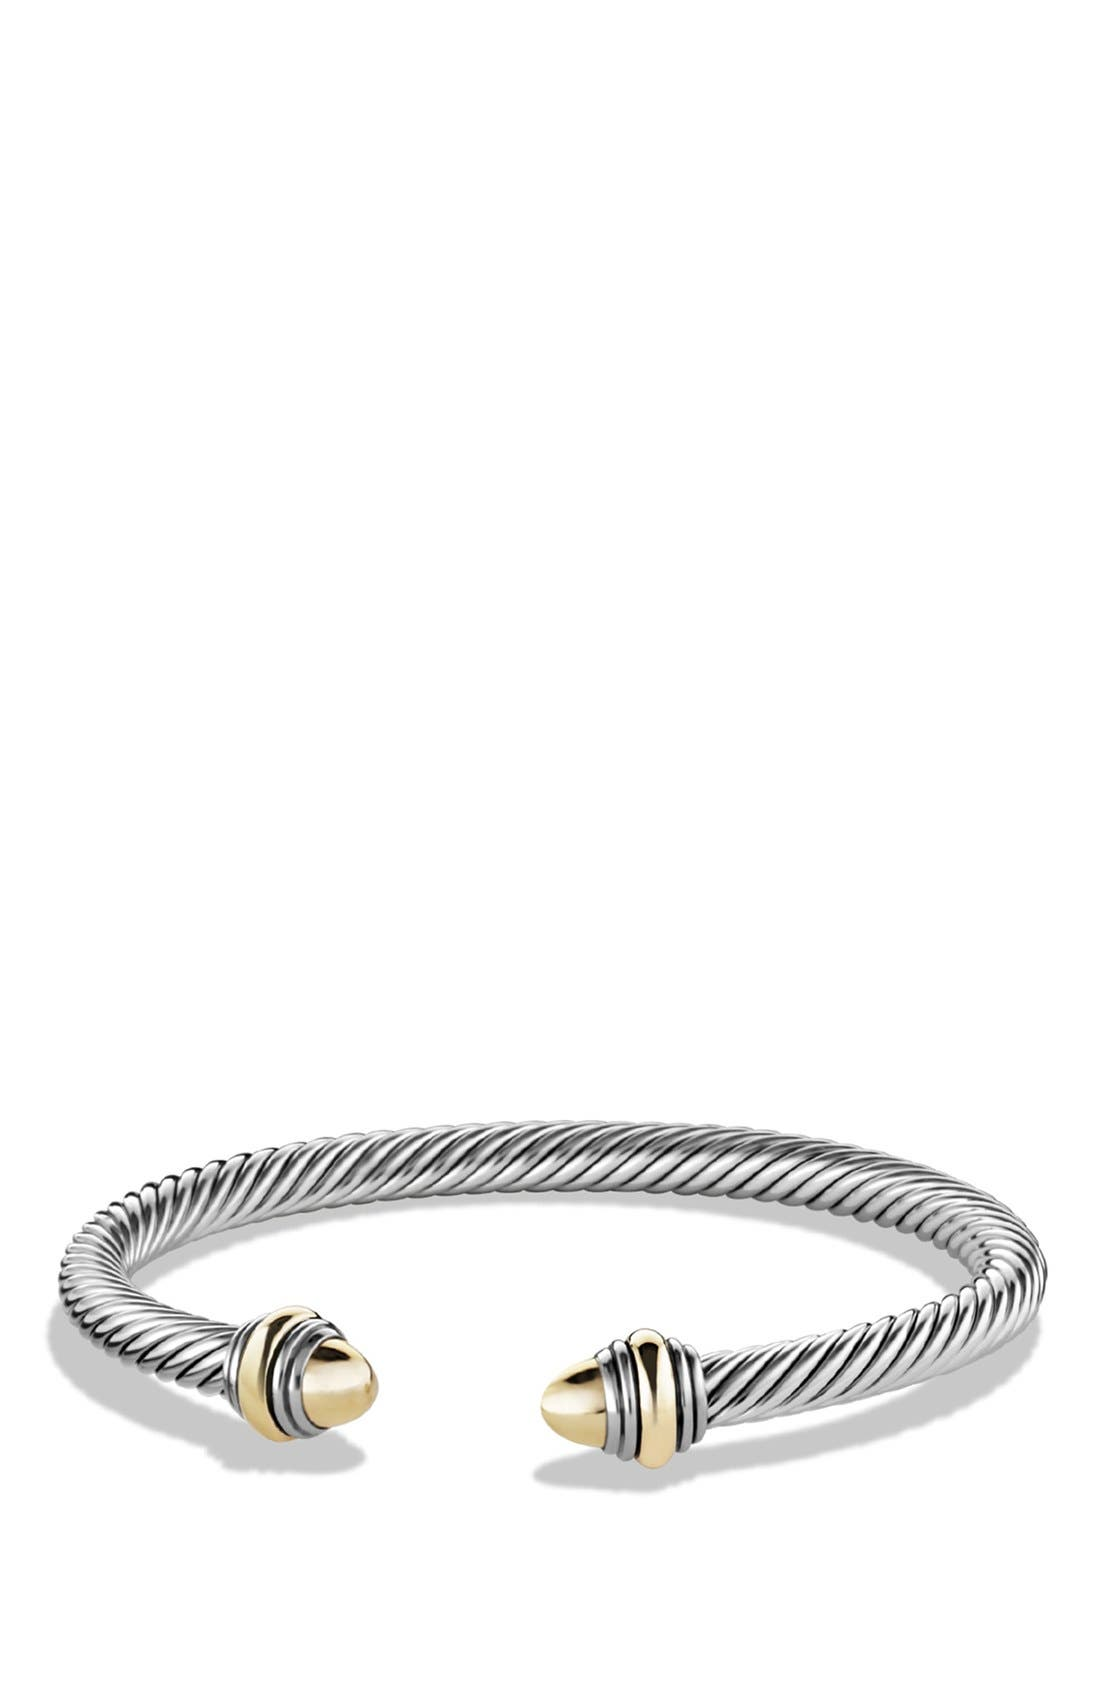 DAVID YURMAN Cable Classic Bracelet with Gold